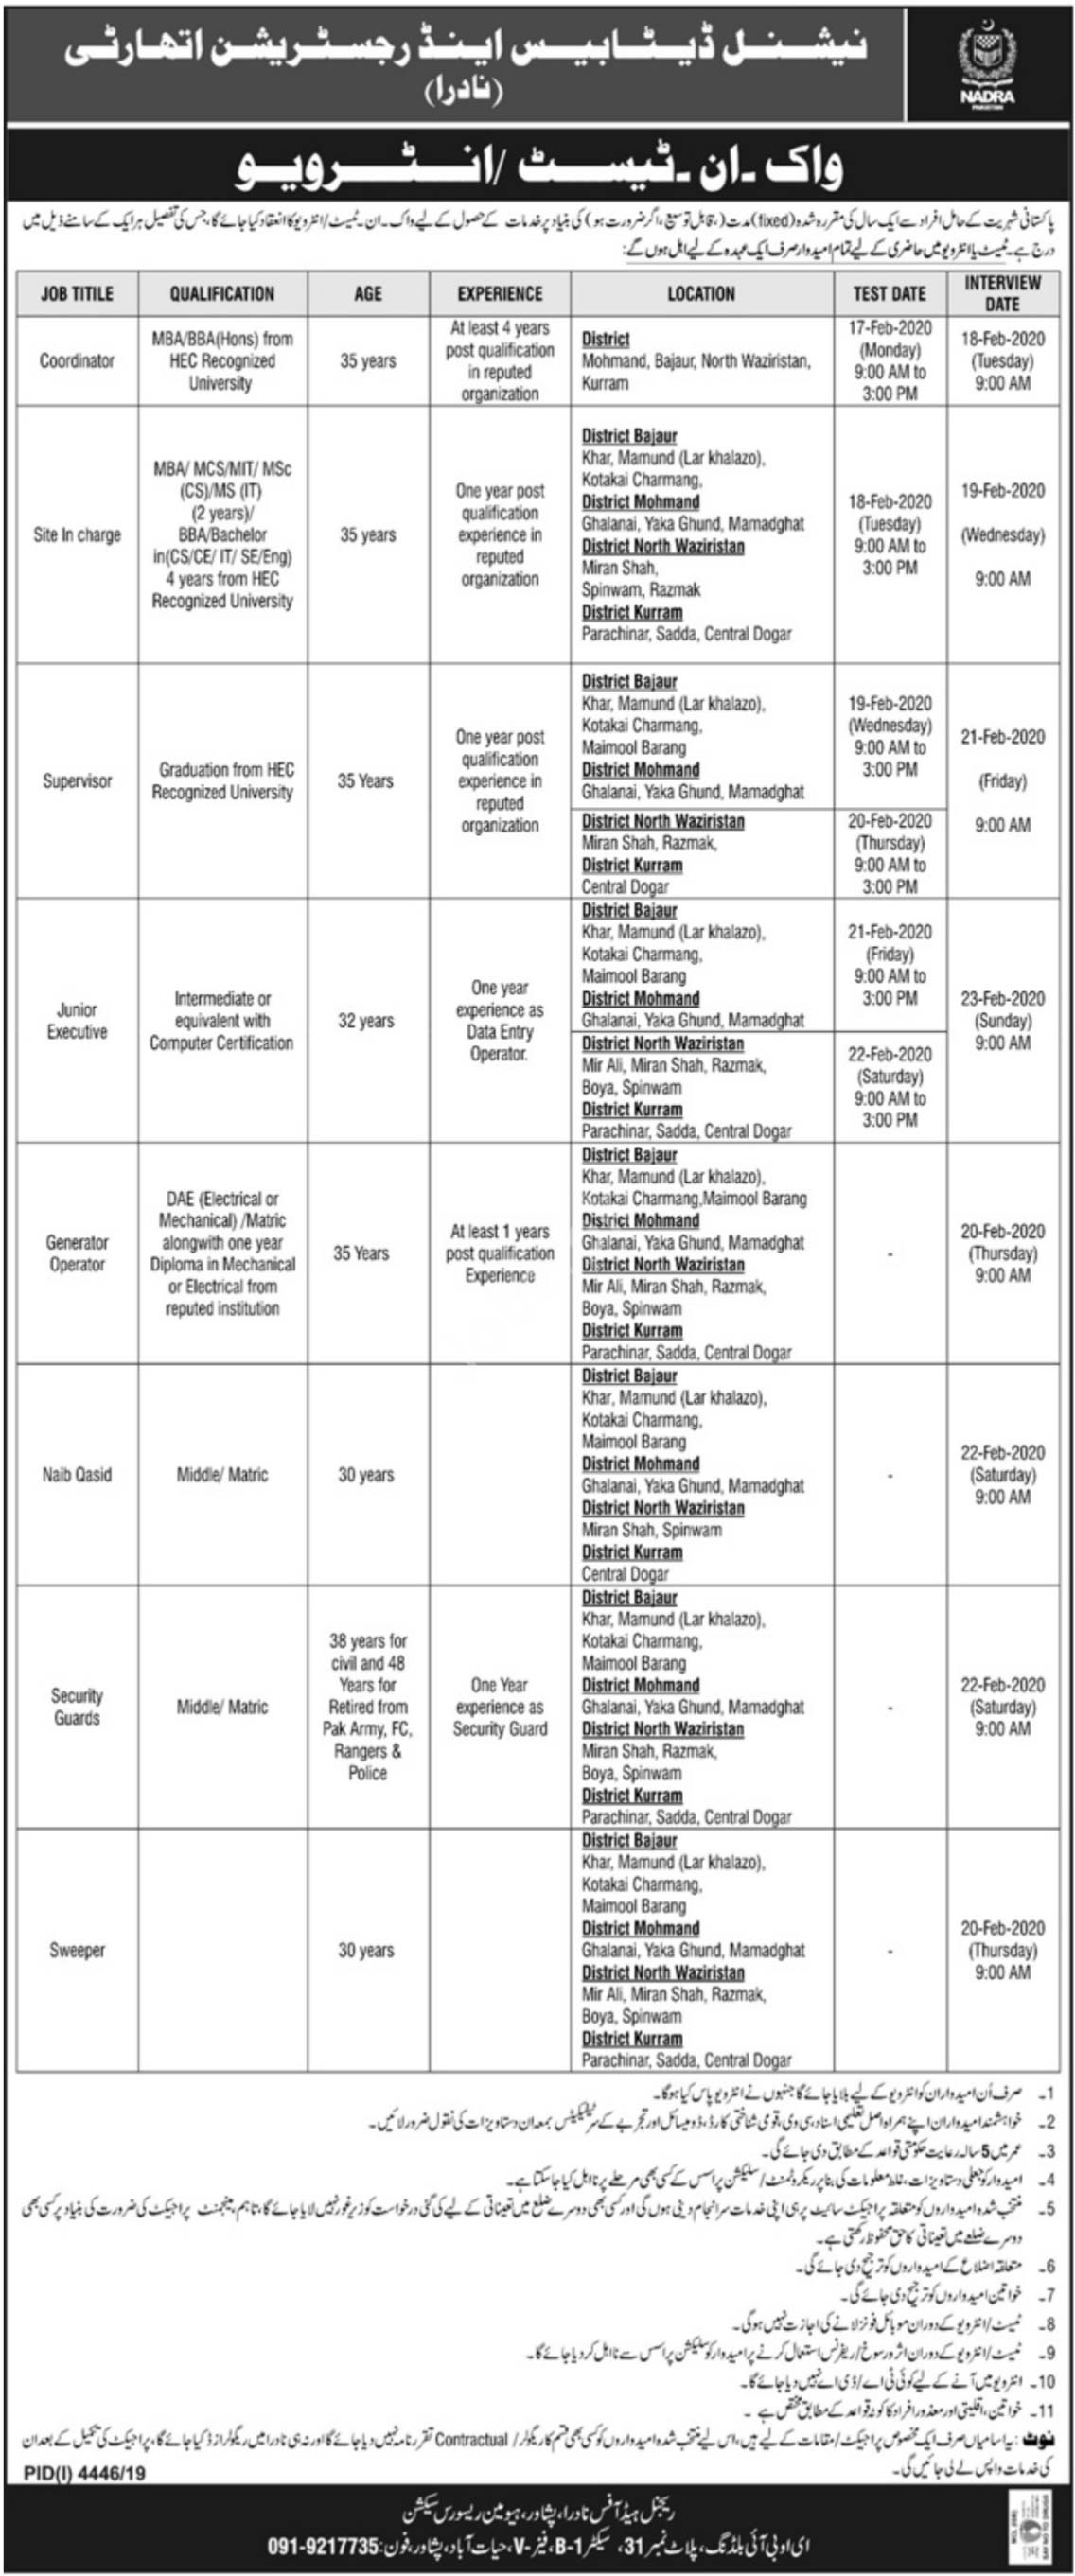 NADRA National Database & Registration Authority Peshawar Jobs 2020 Latest - Walk in Interview